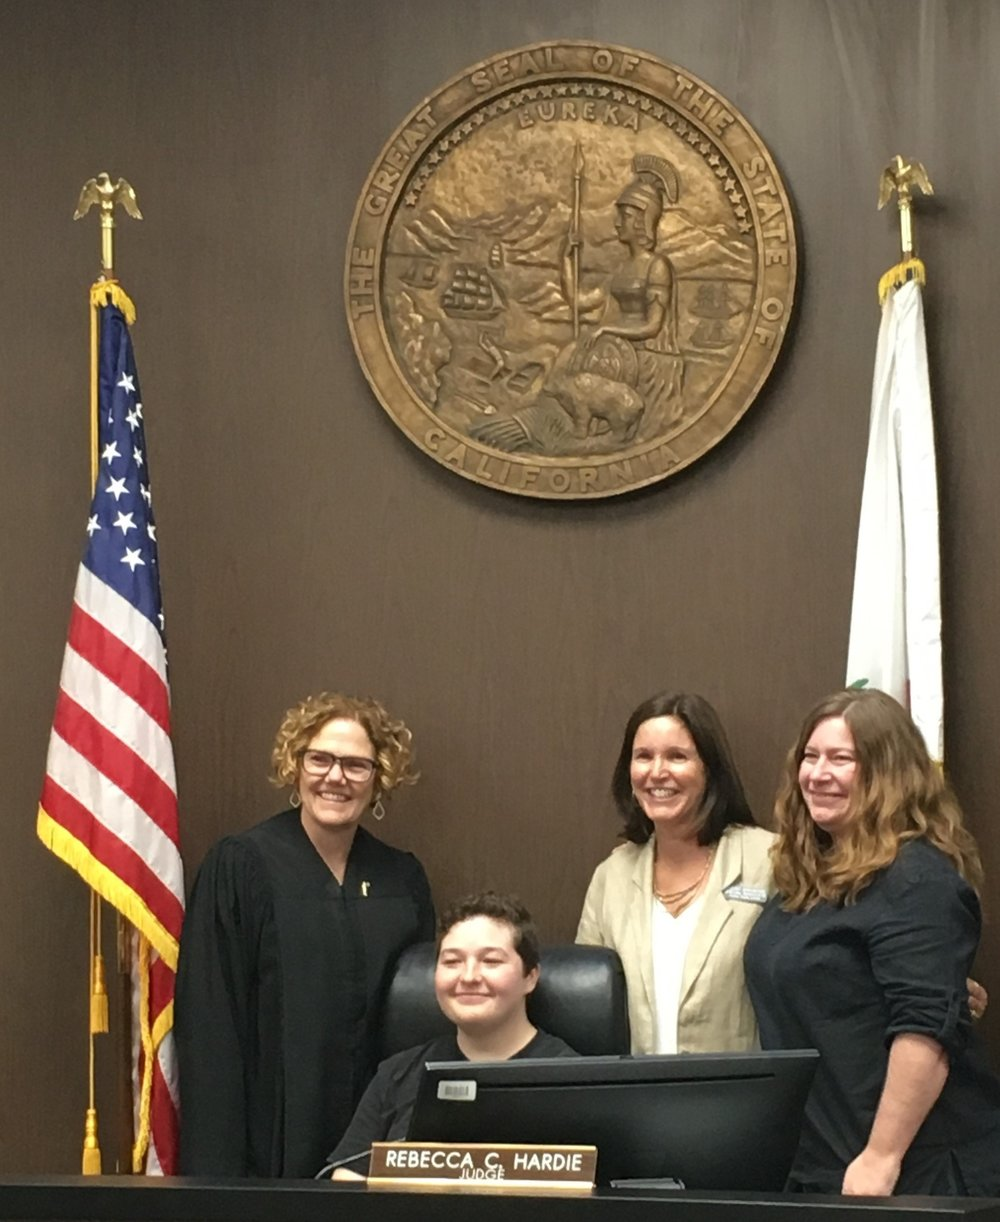 Judge Rebecca Hardie makes Ryan's adoption official!